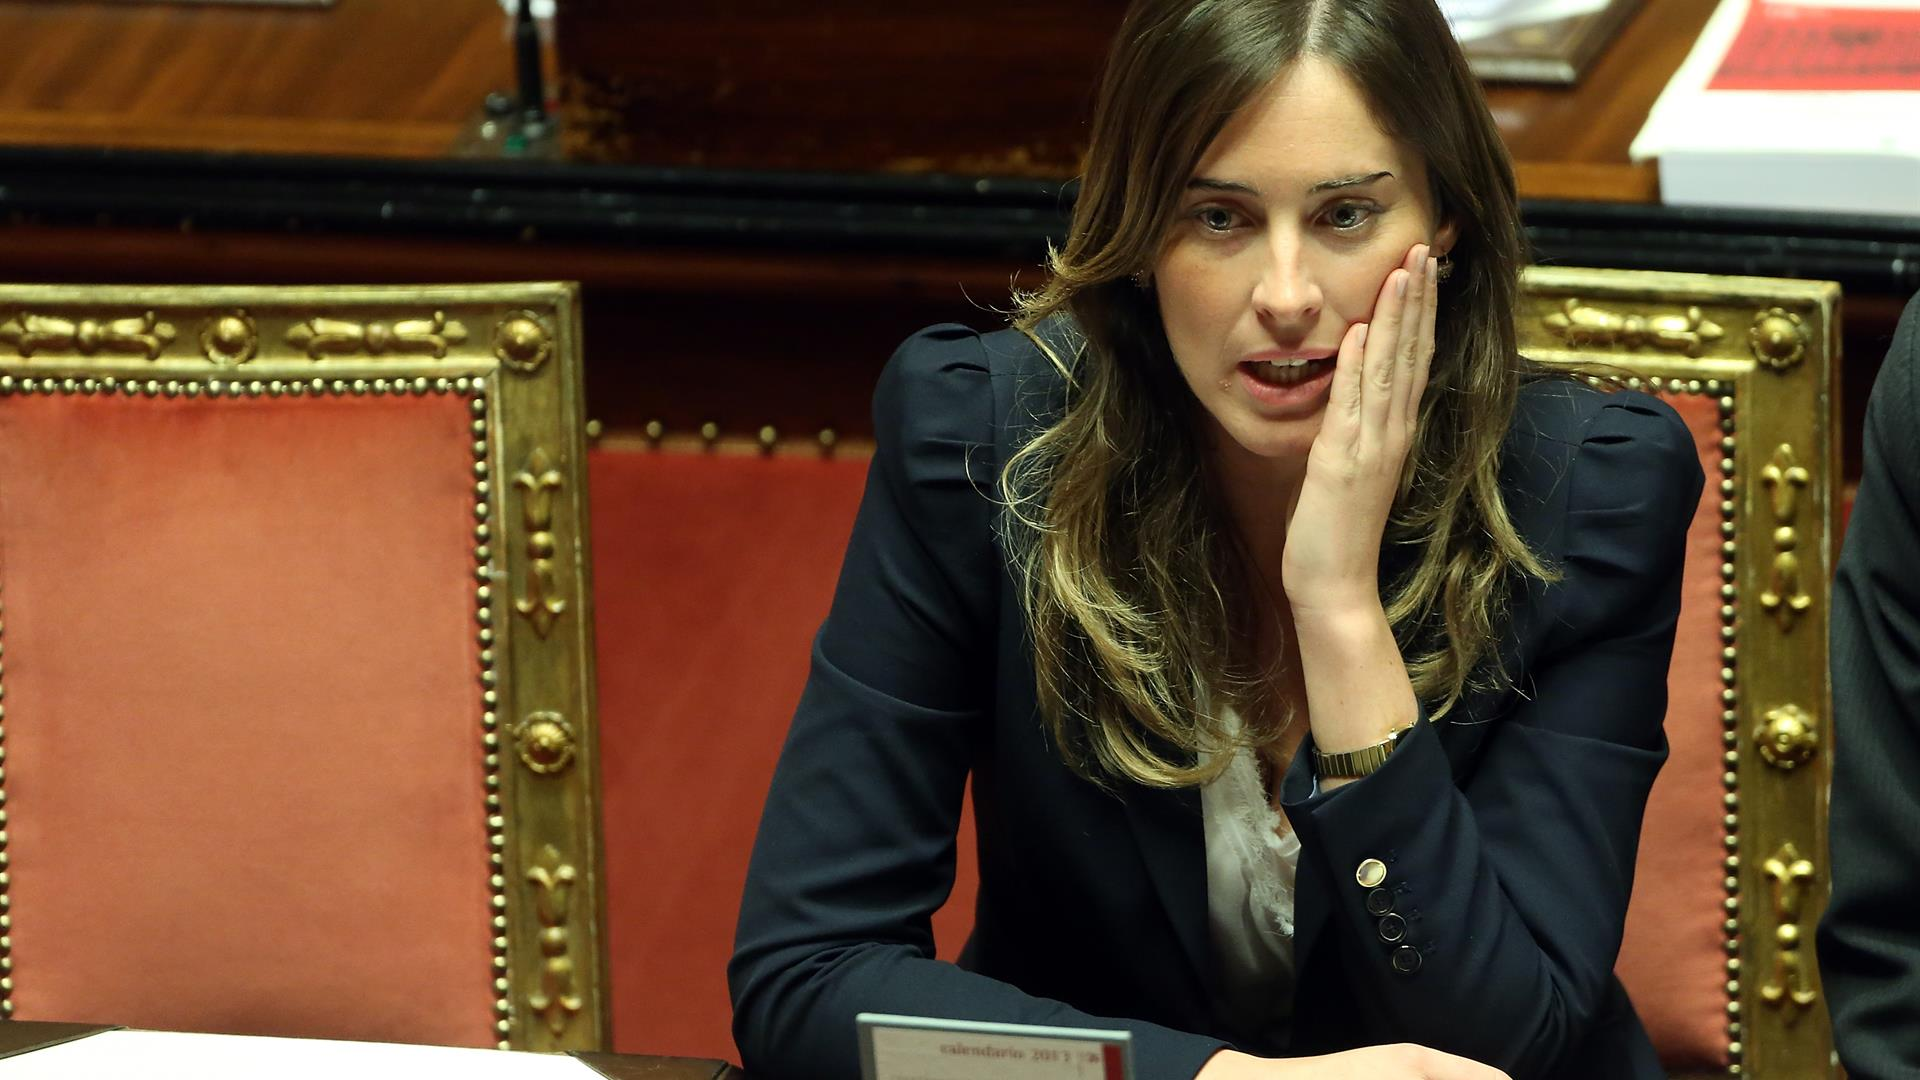 Boschi Franco Origlia:Getty Images)